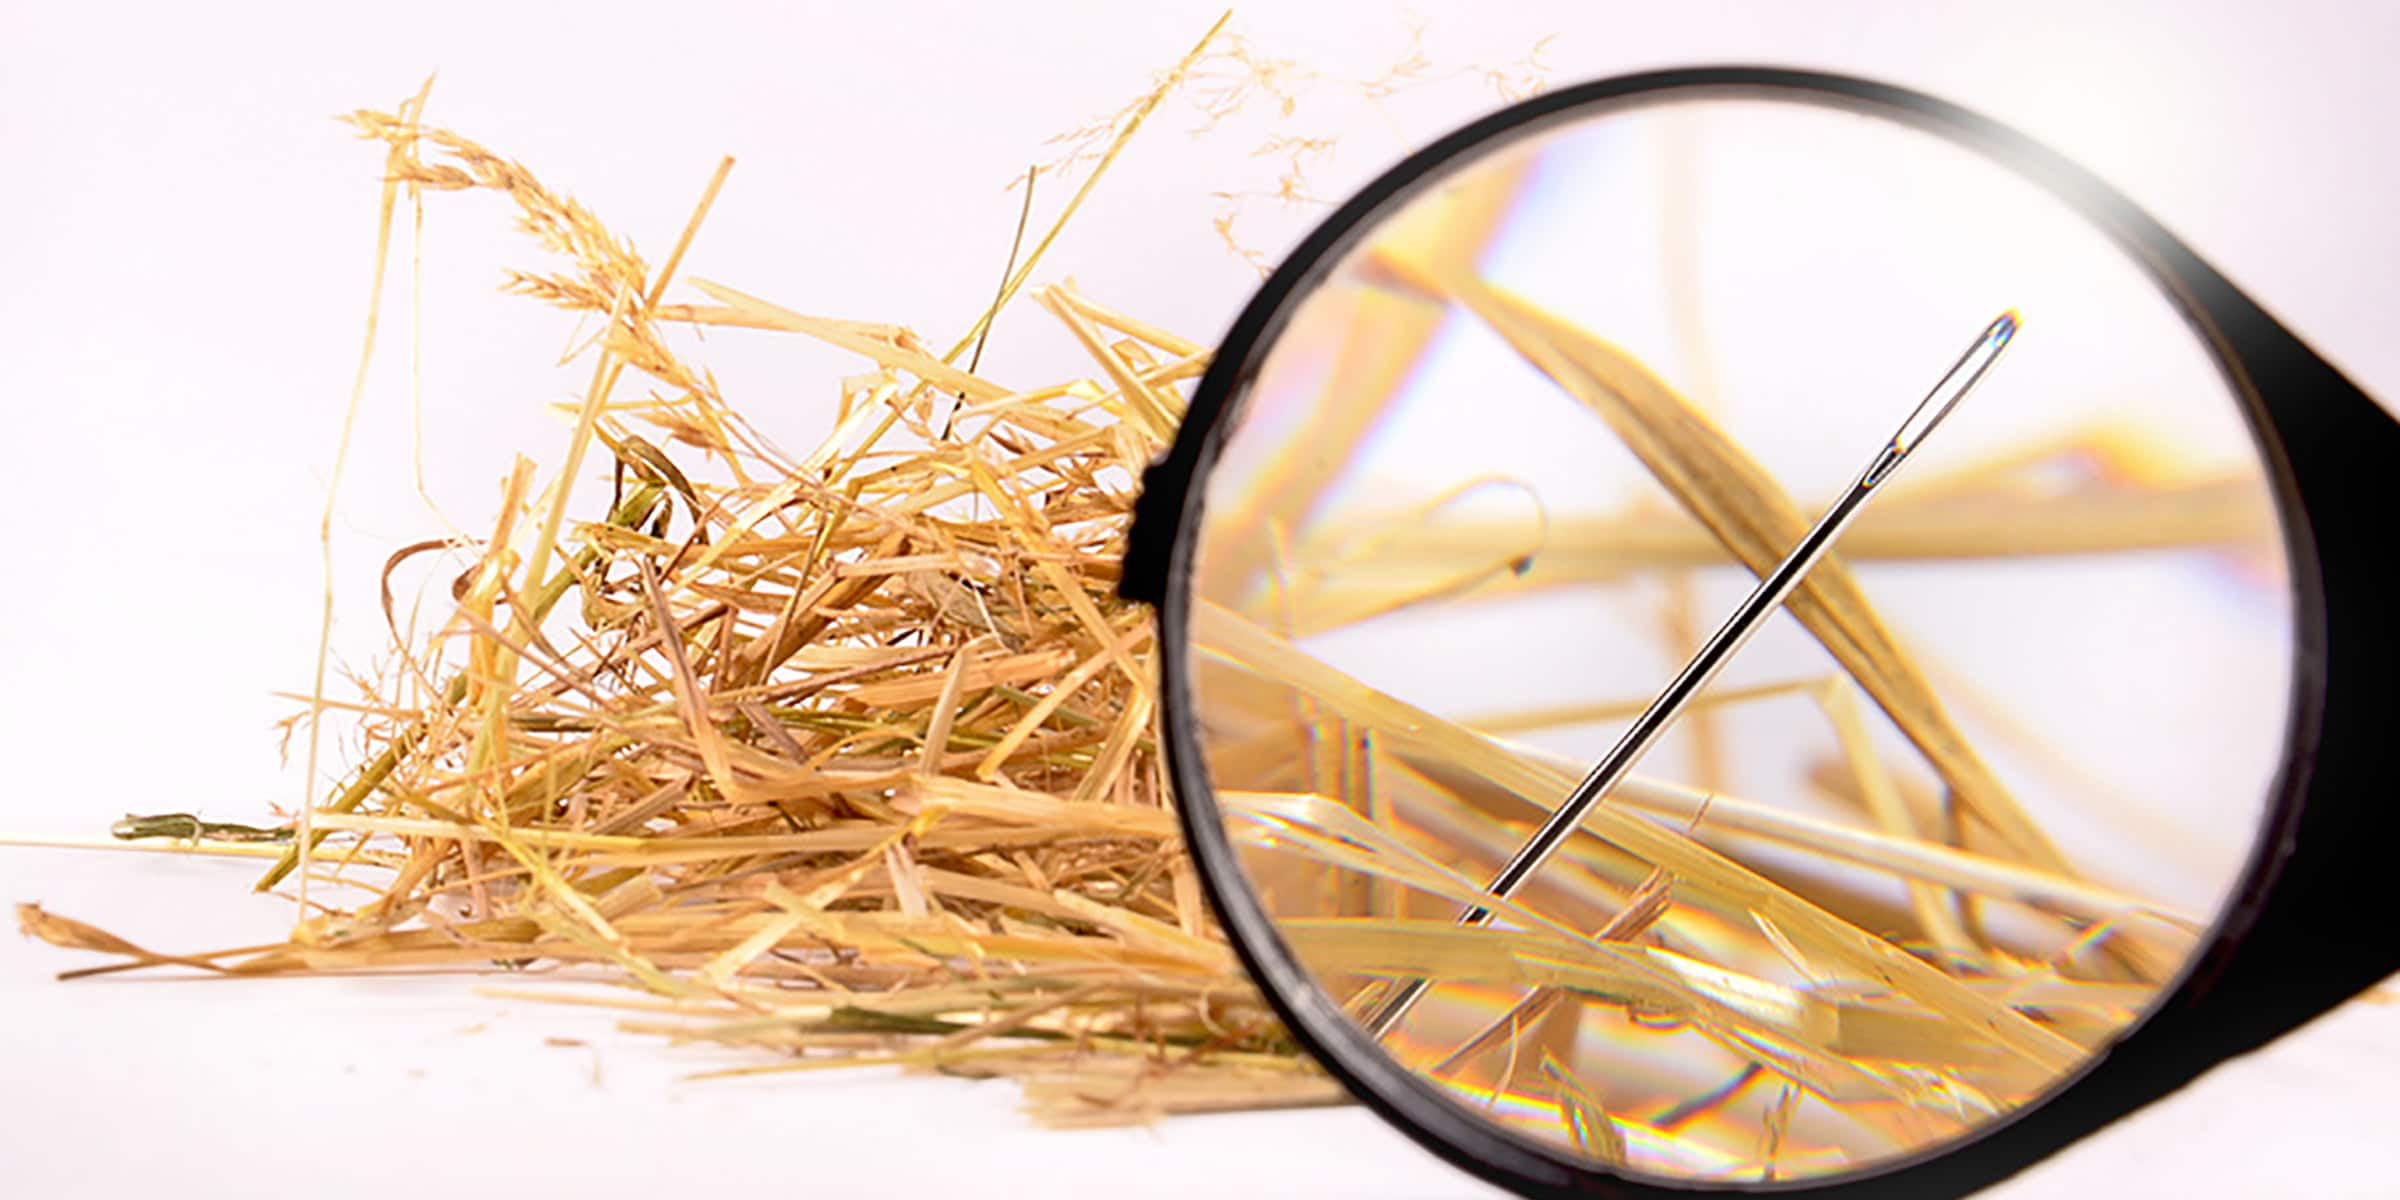 Needle in the Haystack Investing